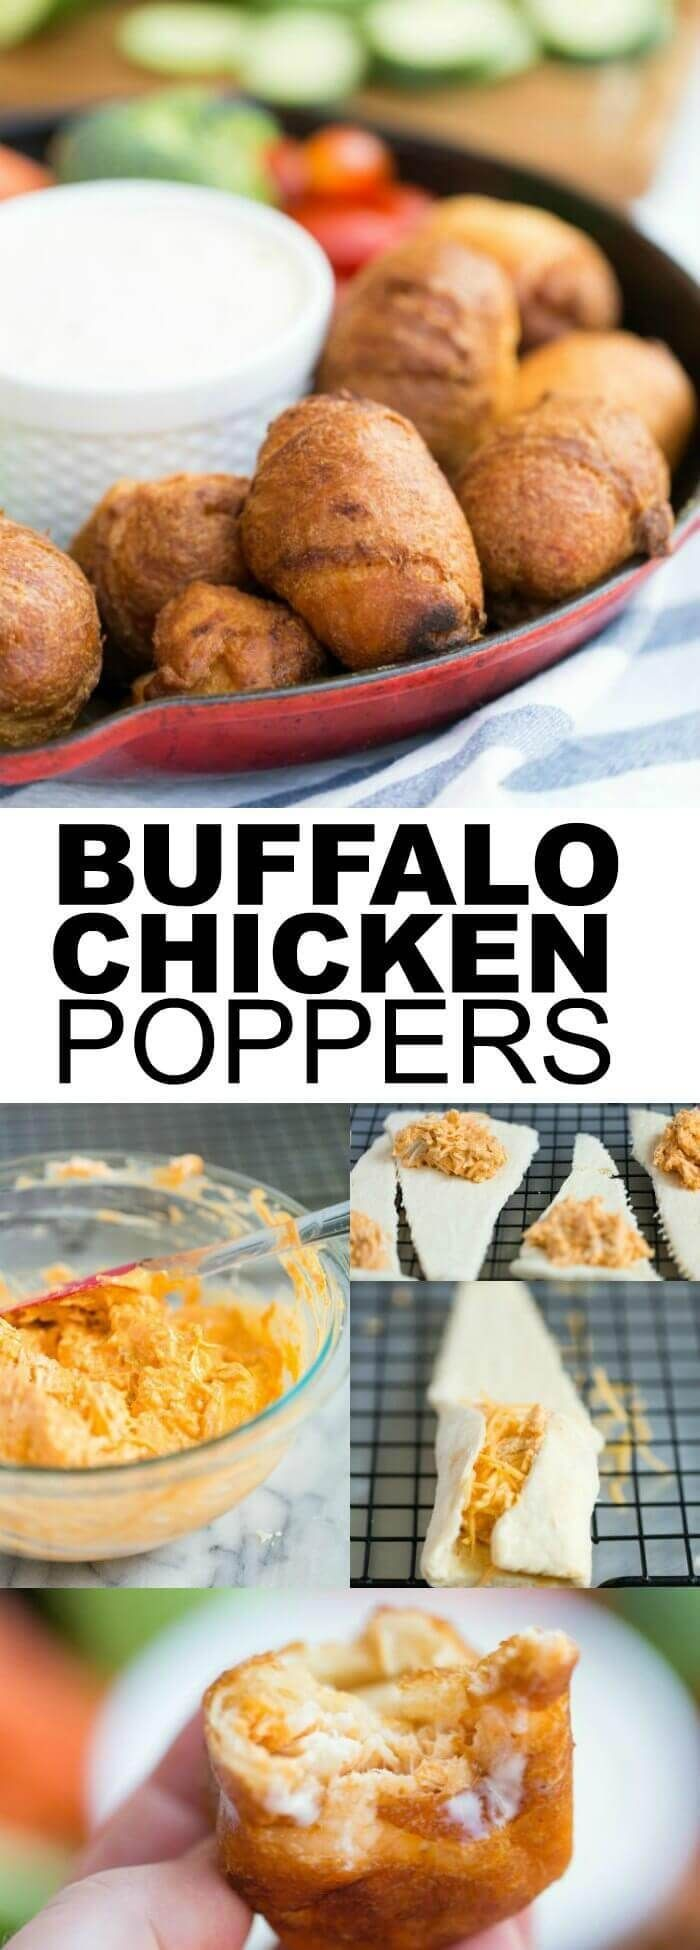 Buffalo Chicken Poppers  via @spaceshipslb